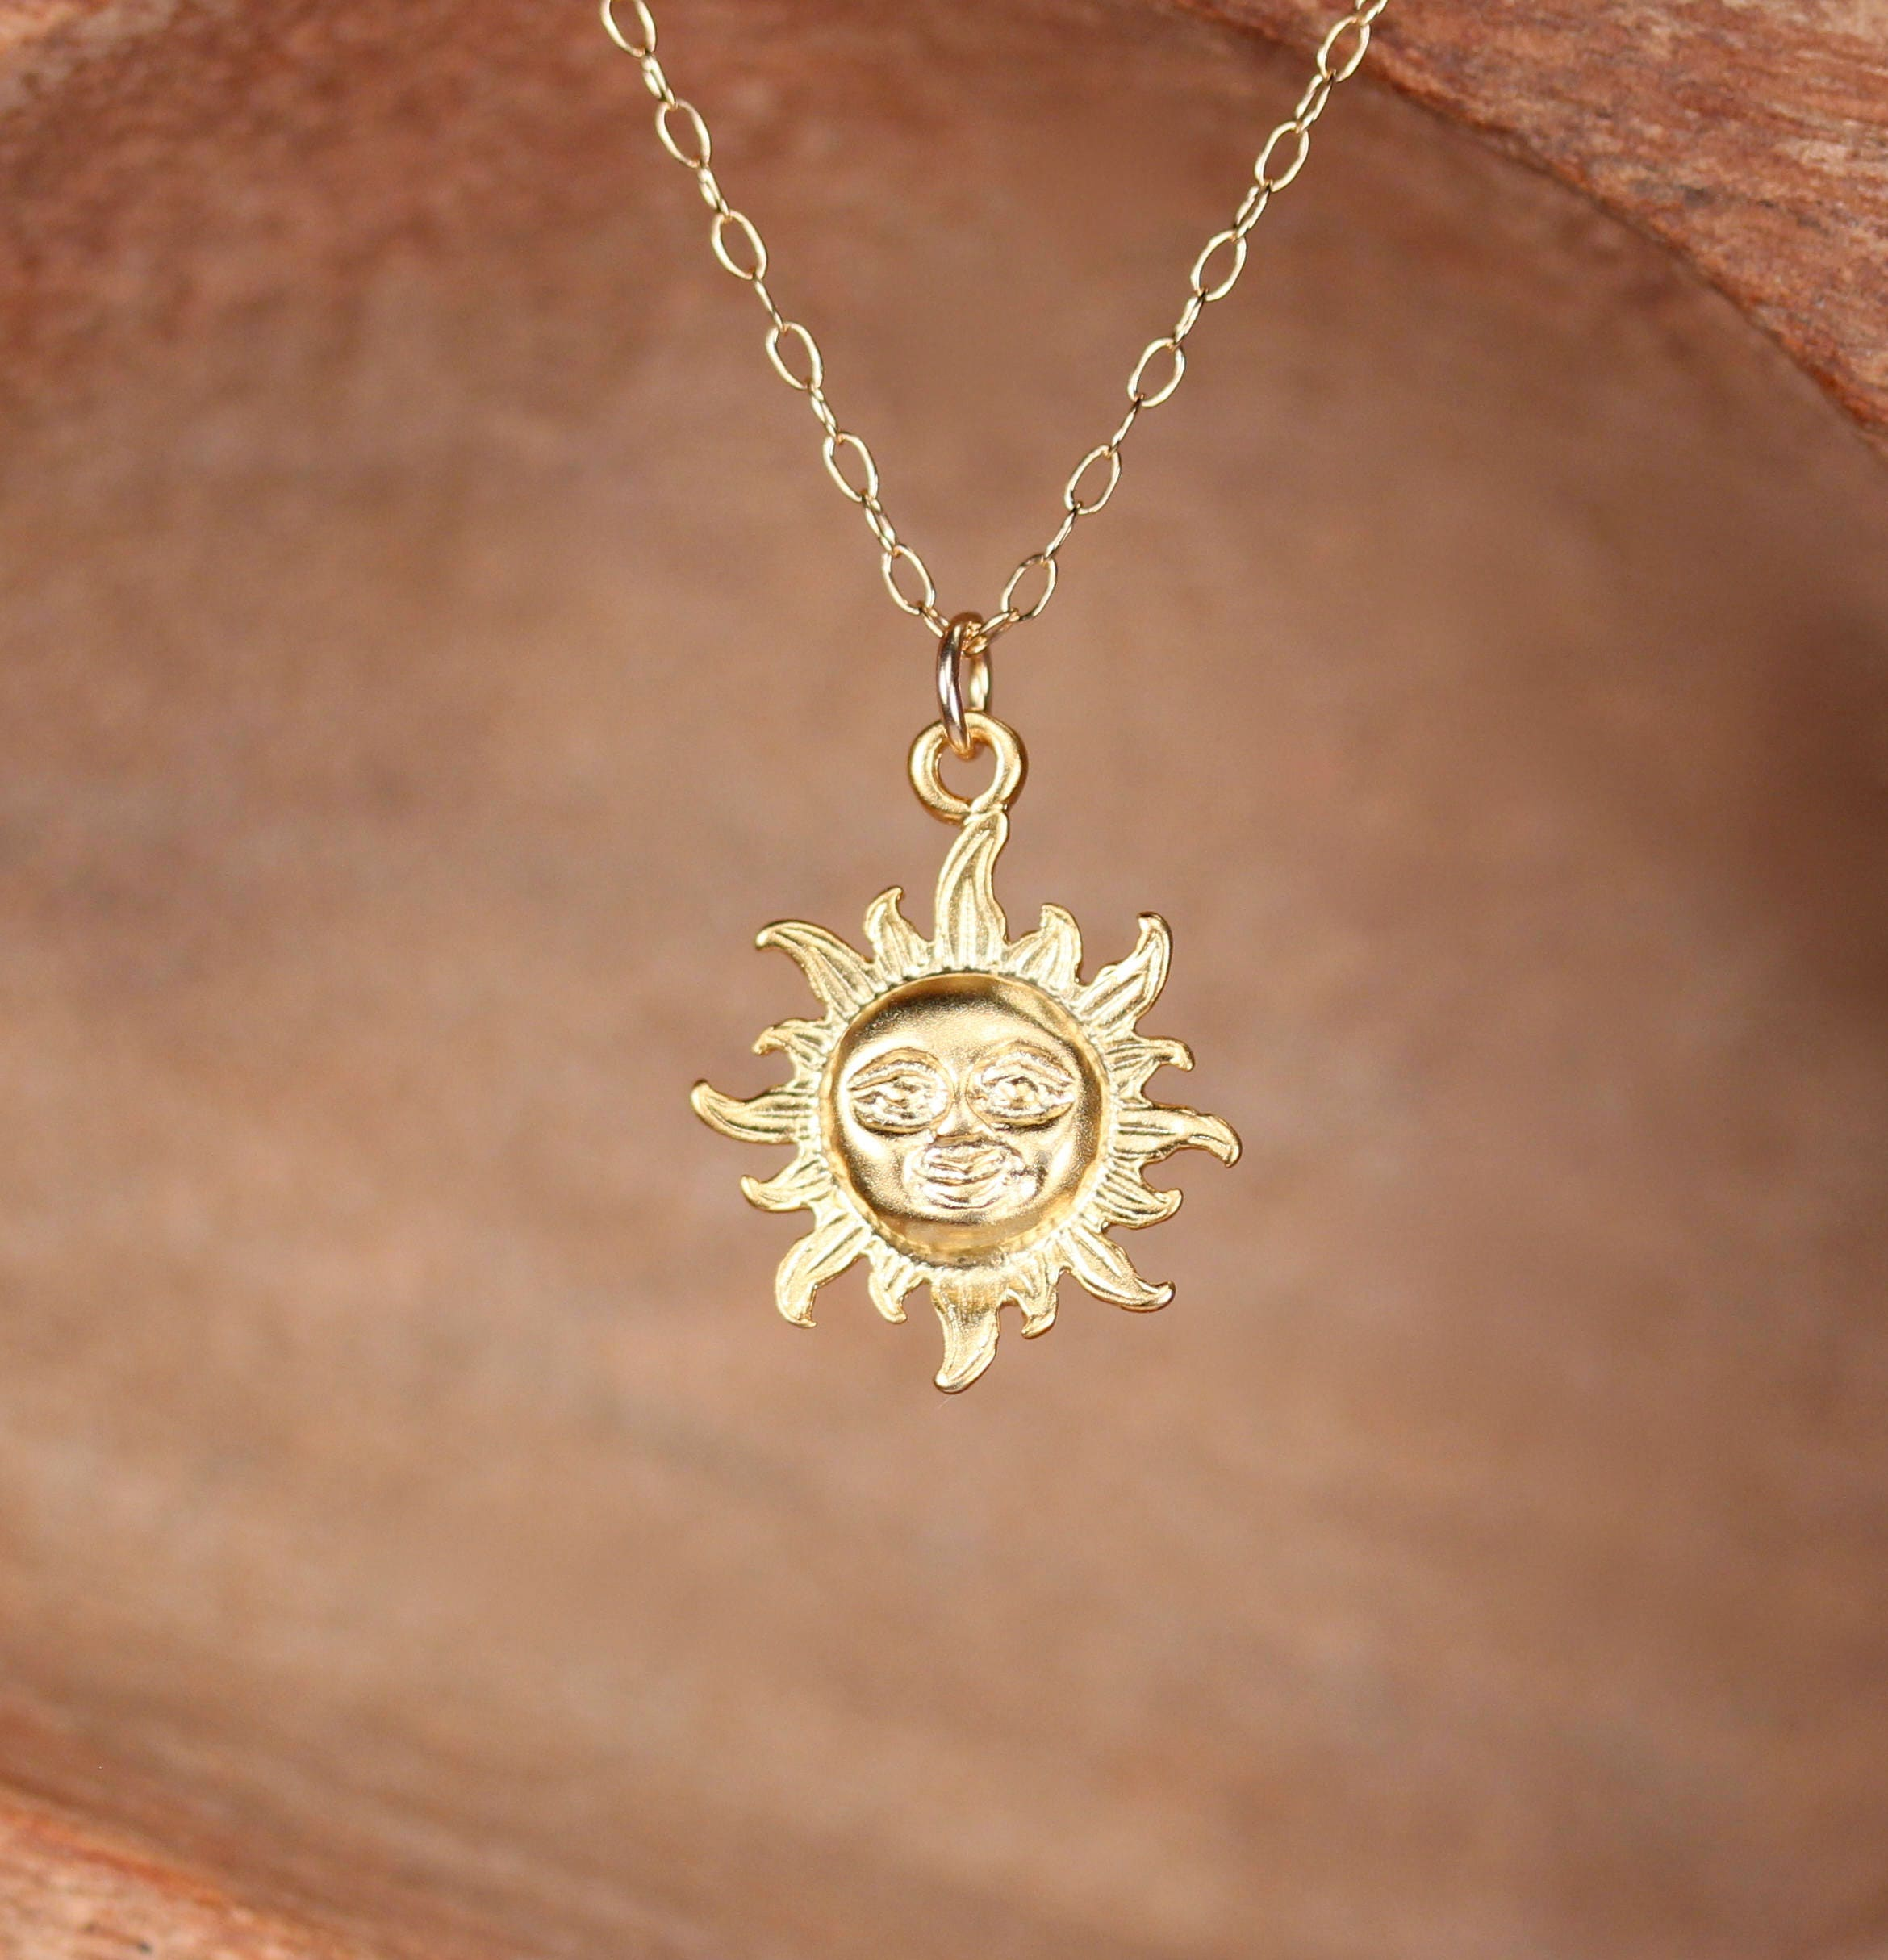 r rose gold necklace sun